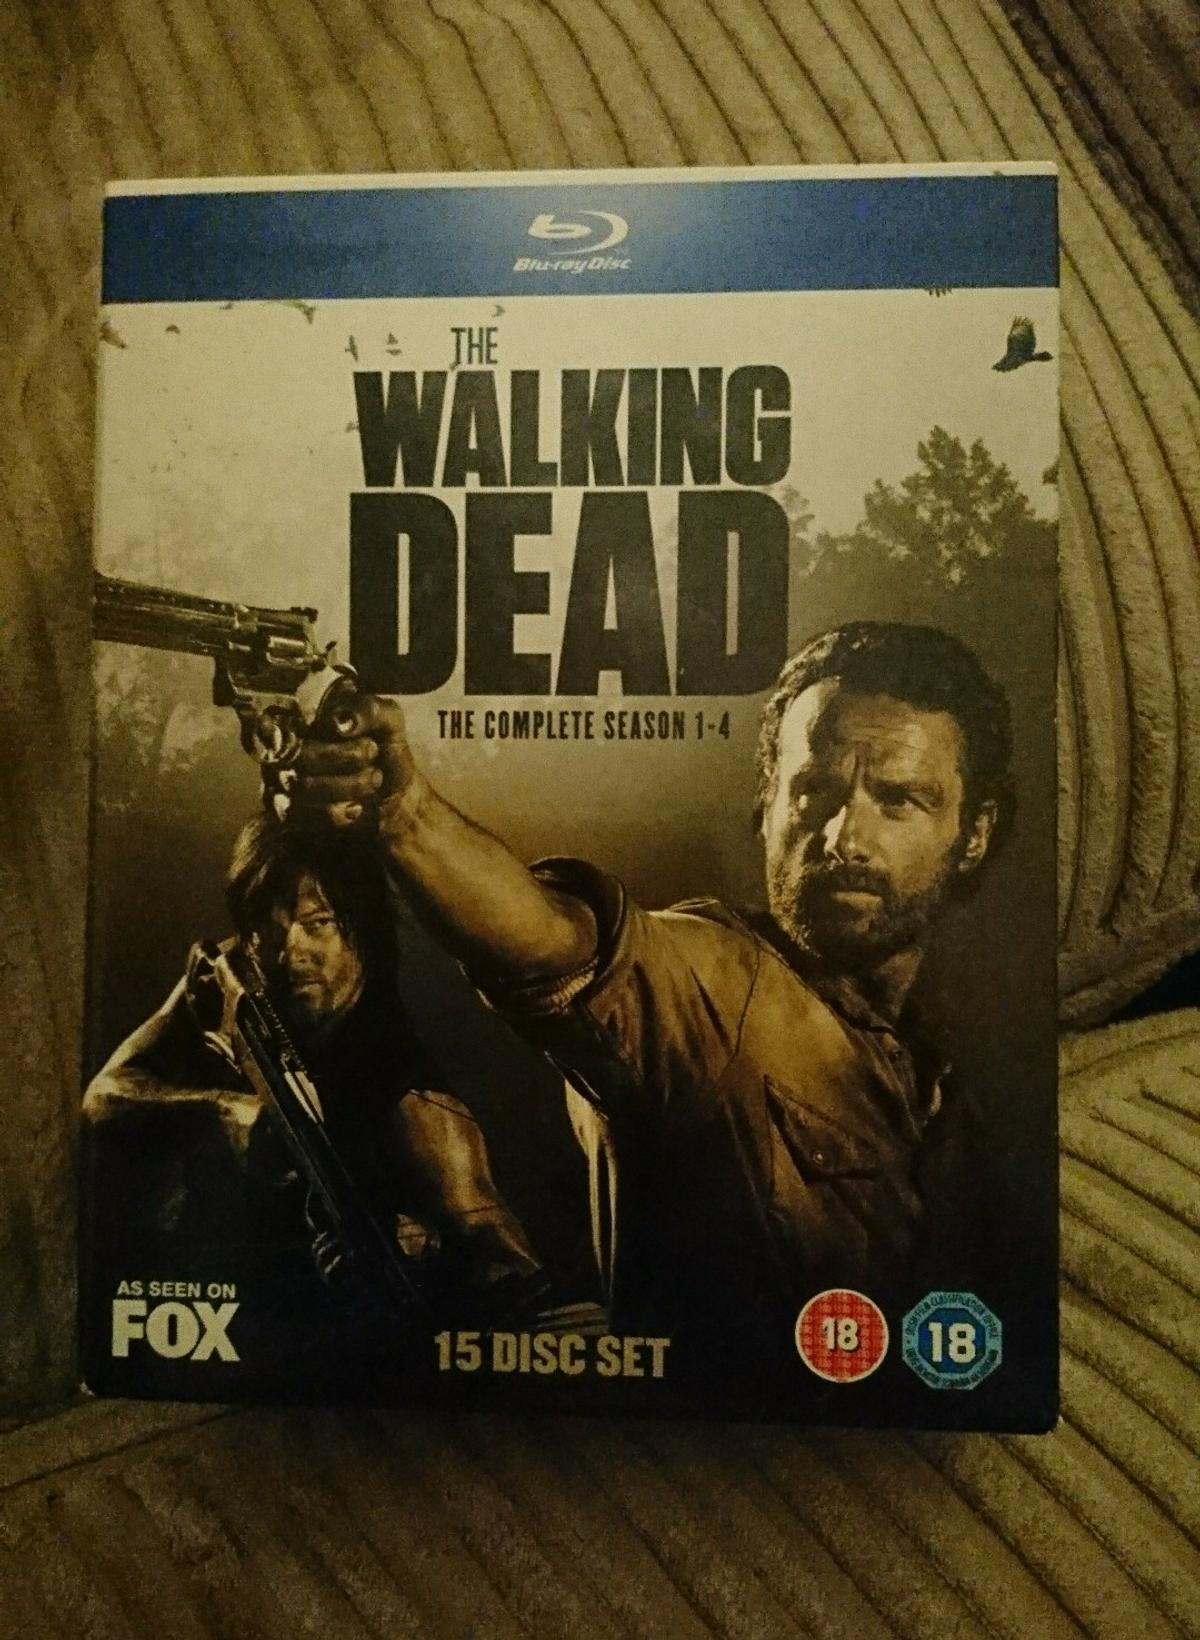 The walking dead box set